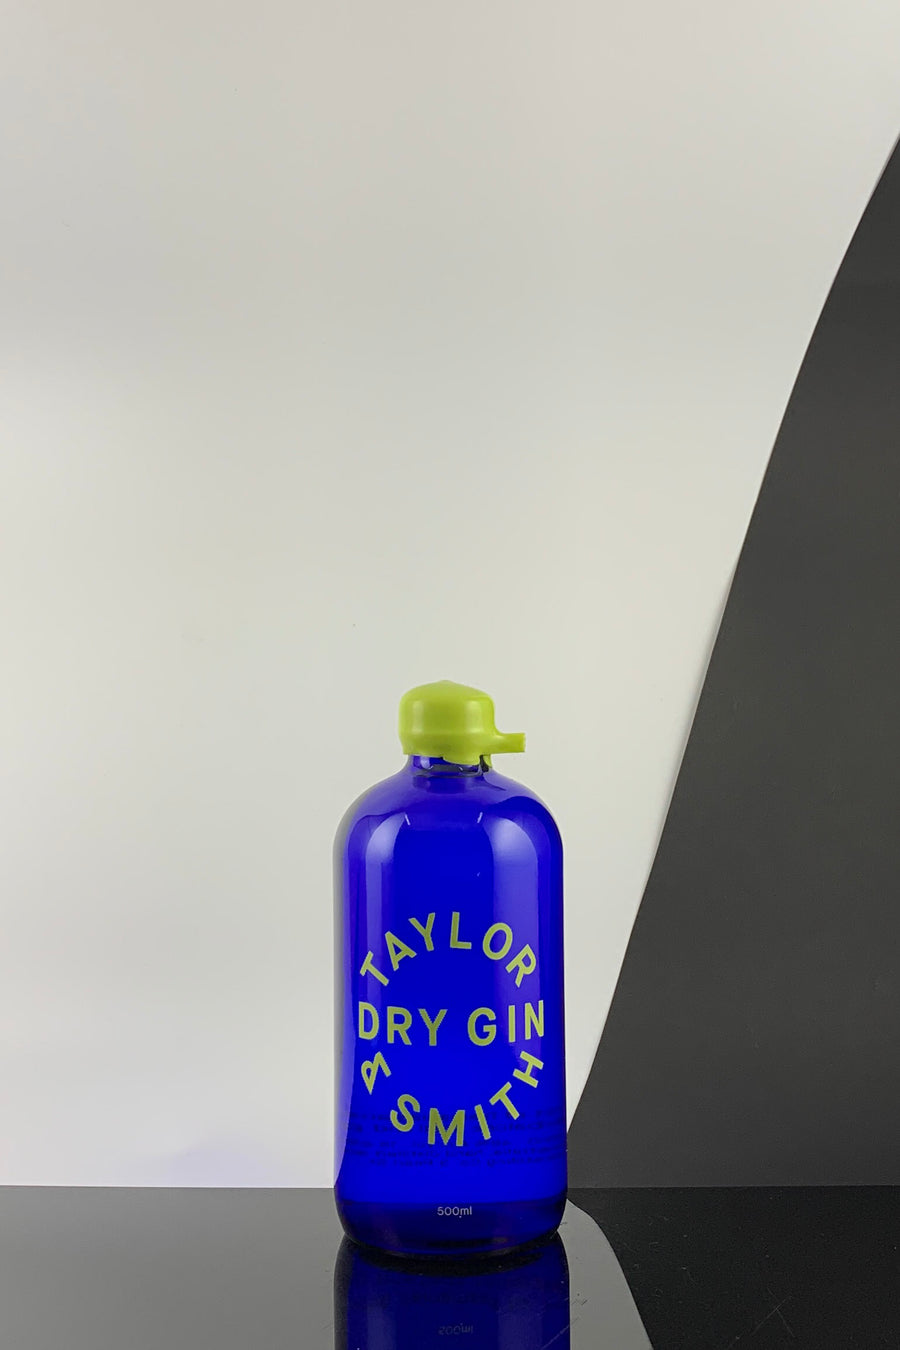 Taylor & Smith Dry Gin